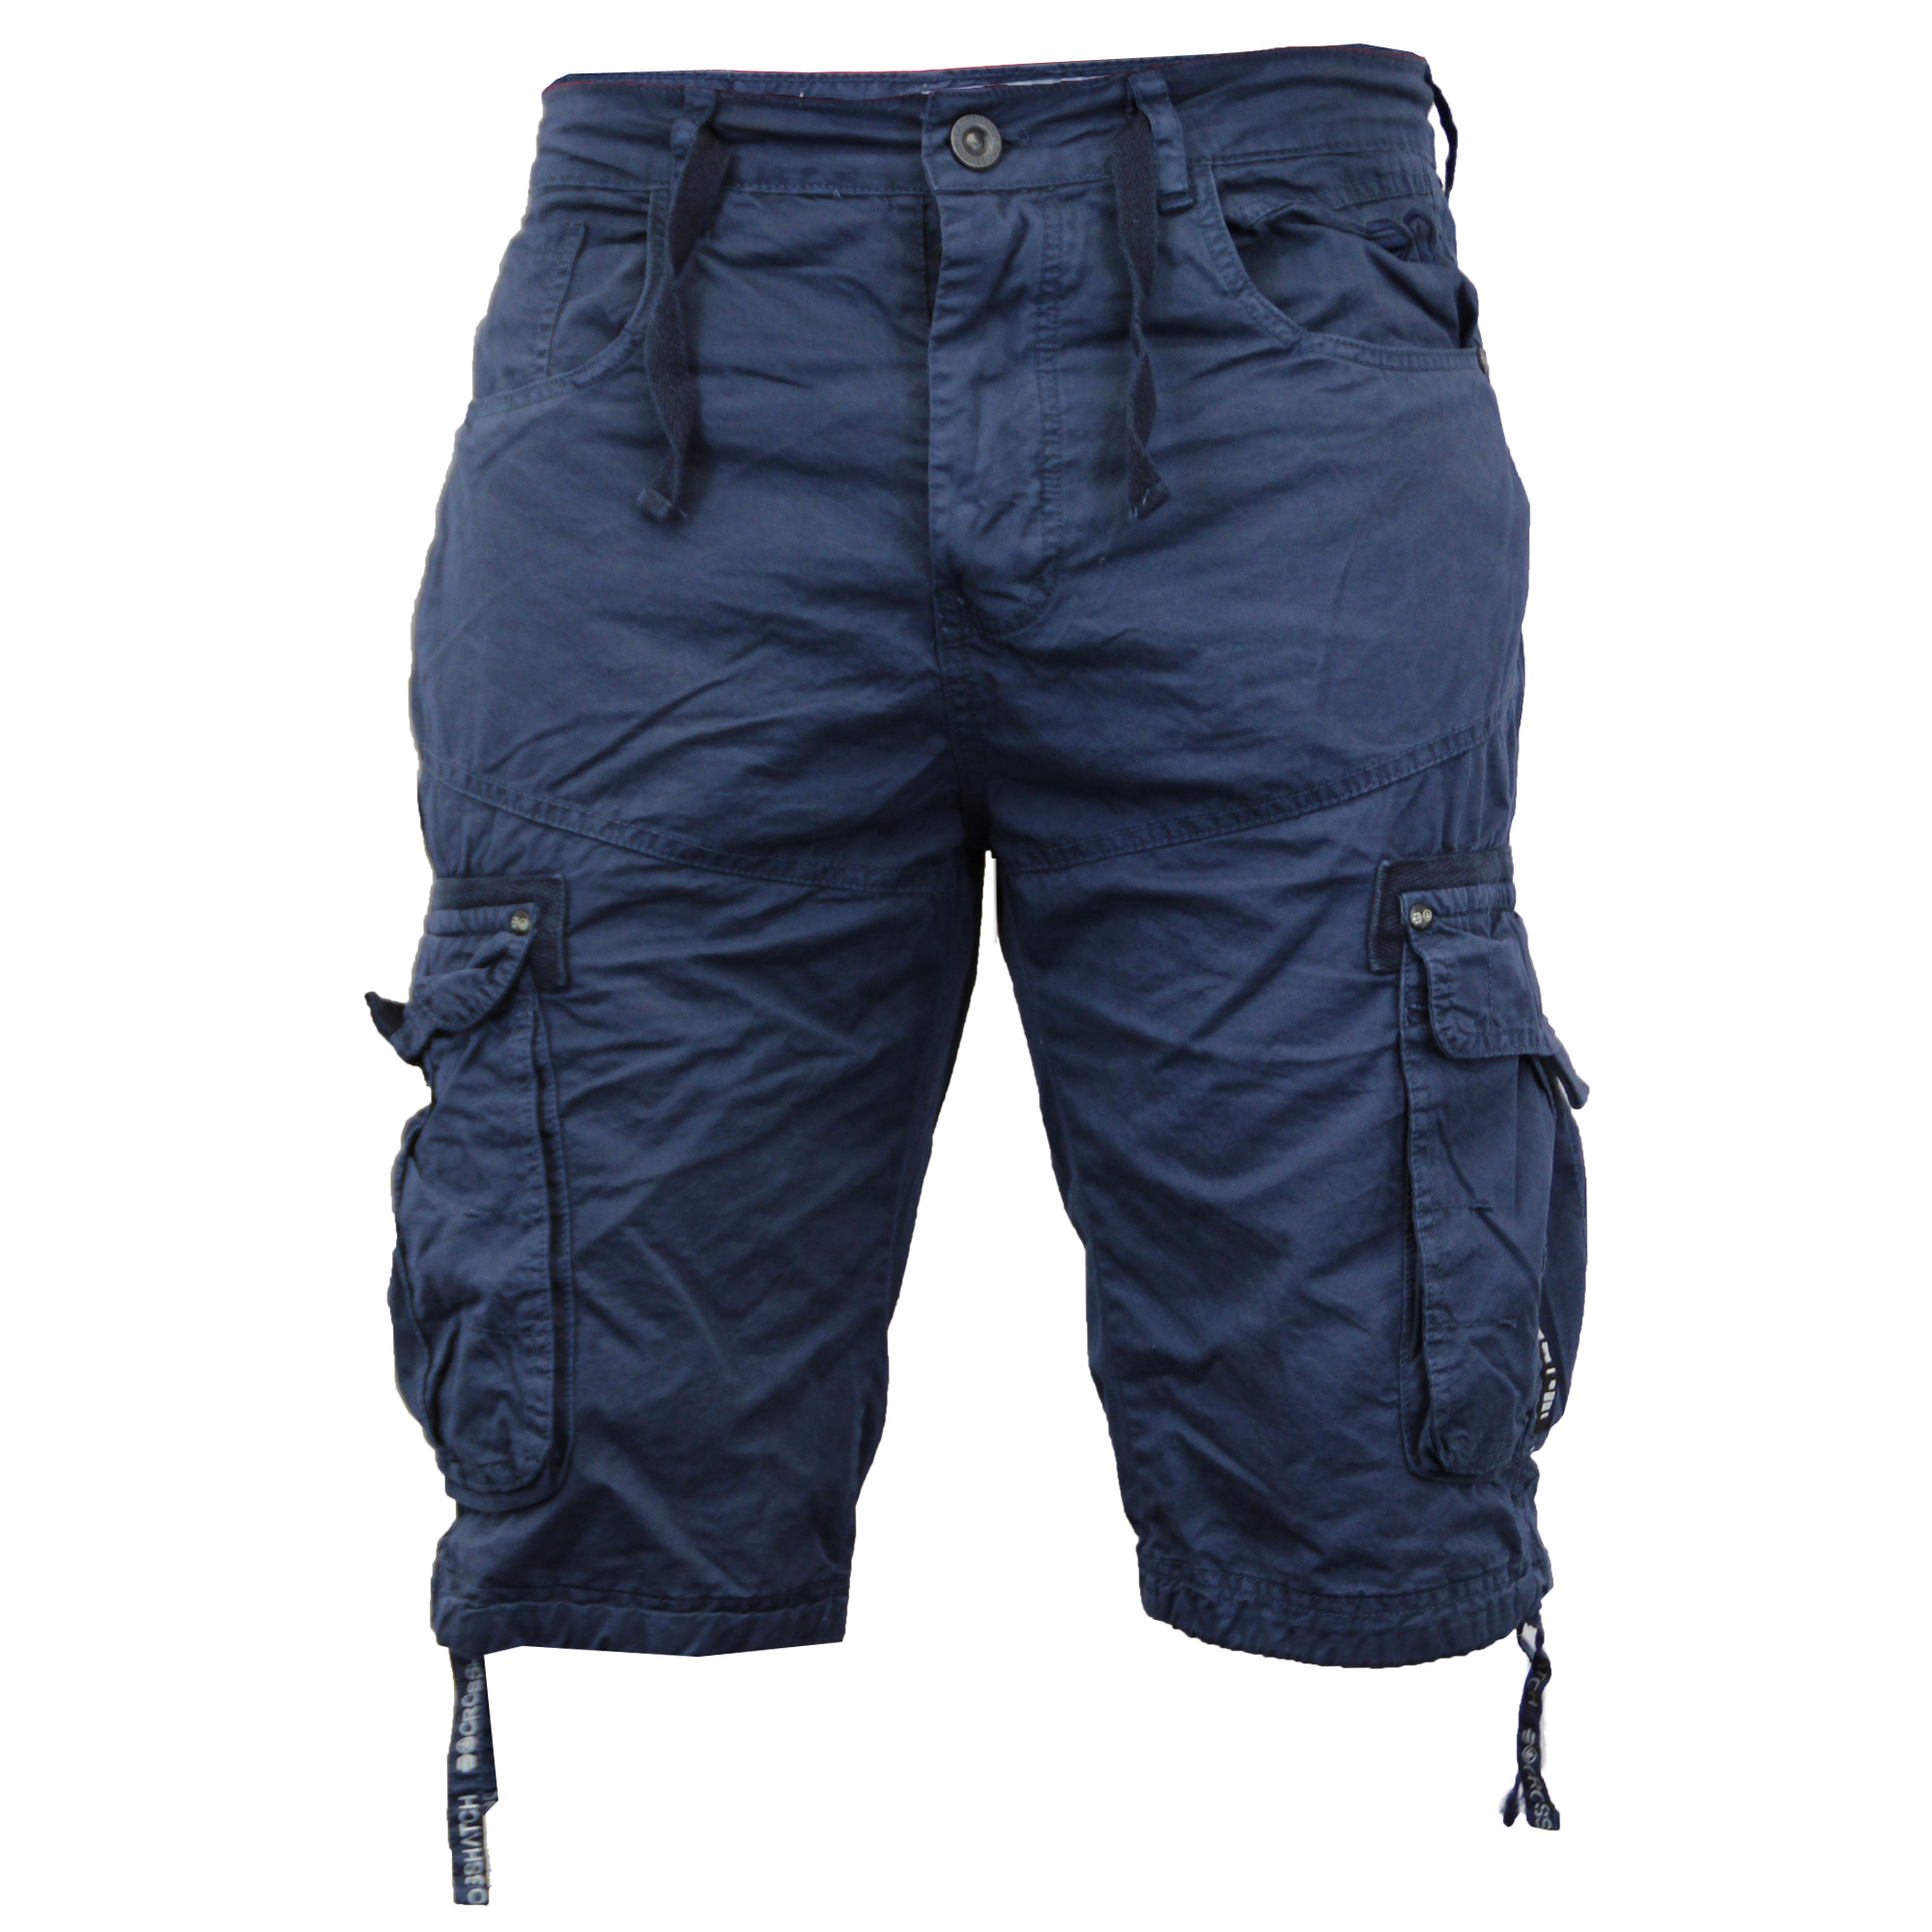 Find mens knee length shorts at ShopStyle. Shop the latest collection of mens knee length shorts from the most popular stores - all in one place.